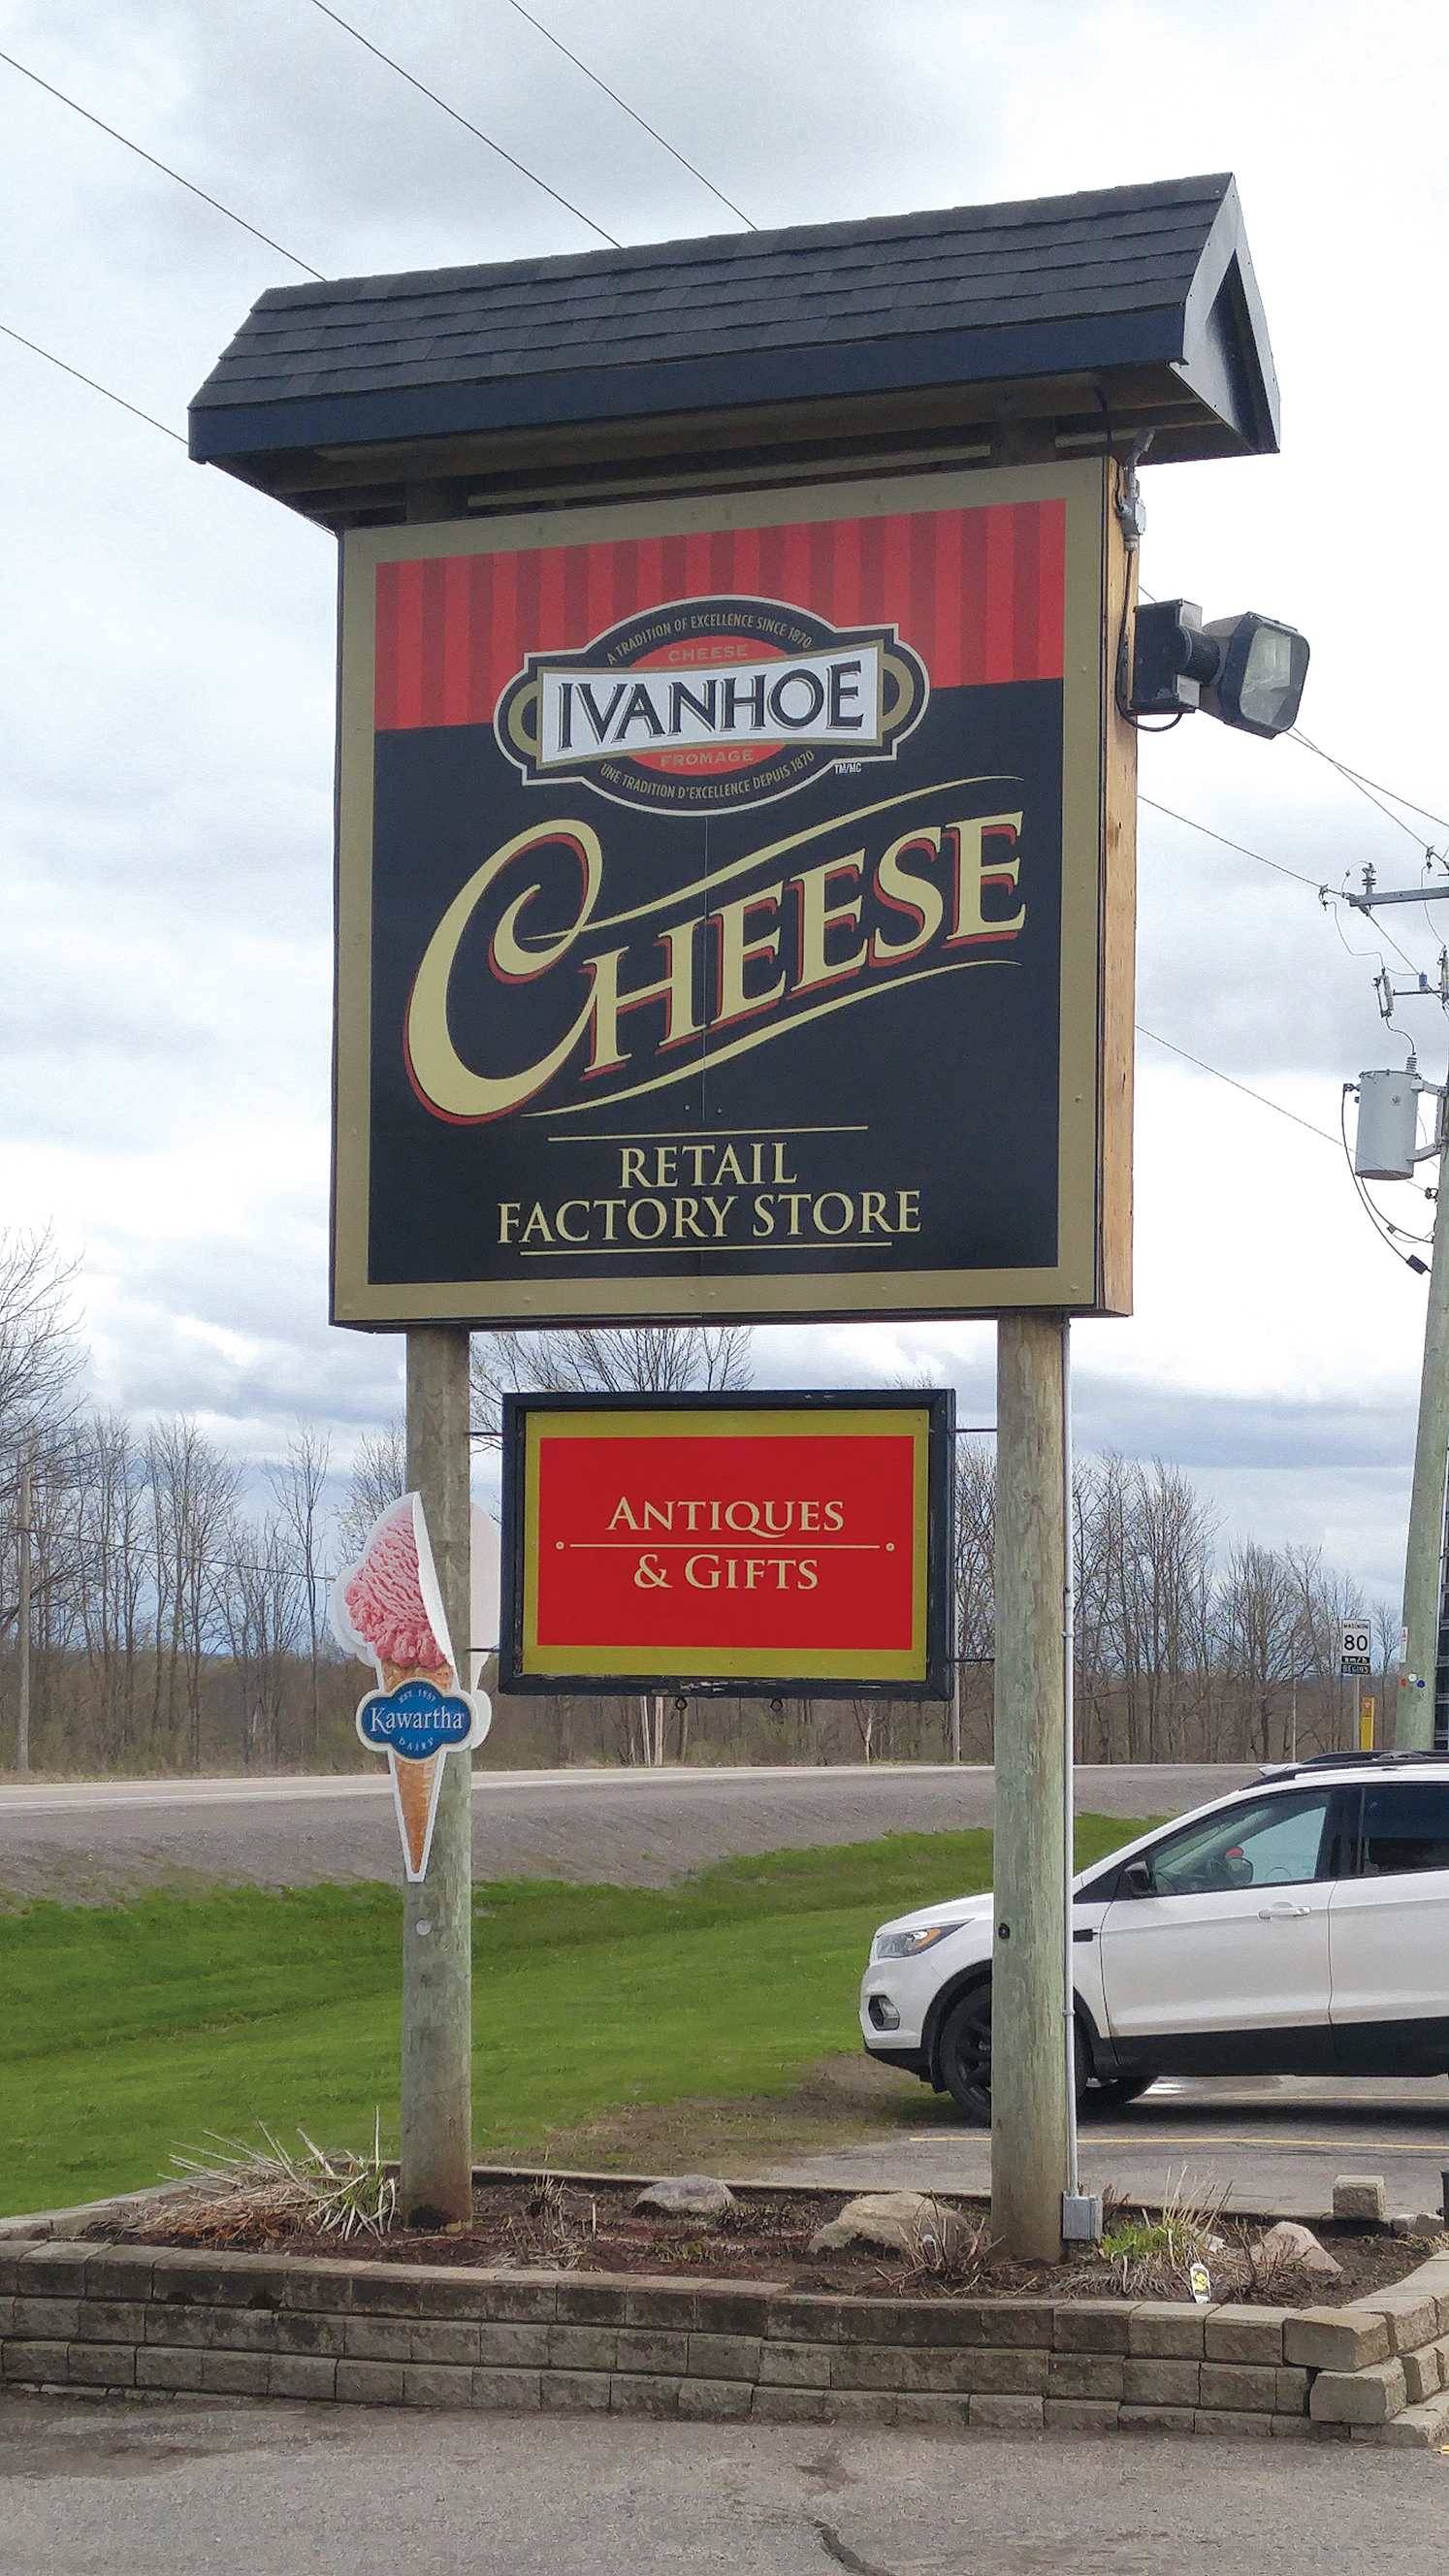 A well-known stop for tourists, cottagers and locals alike, the Ivanhoe Cheese store has been a staple business for the community for more than 150 years. Photo by James Kerr.